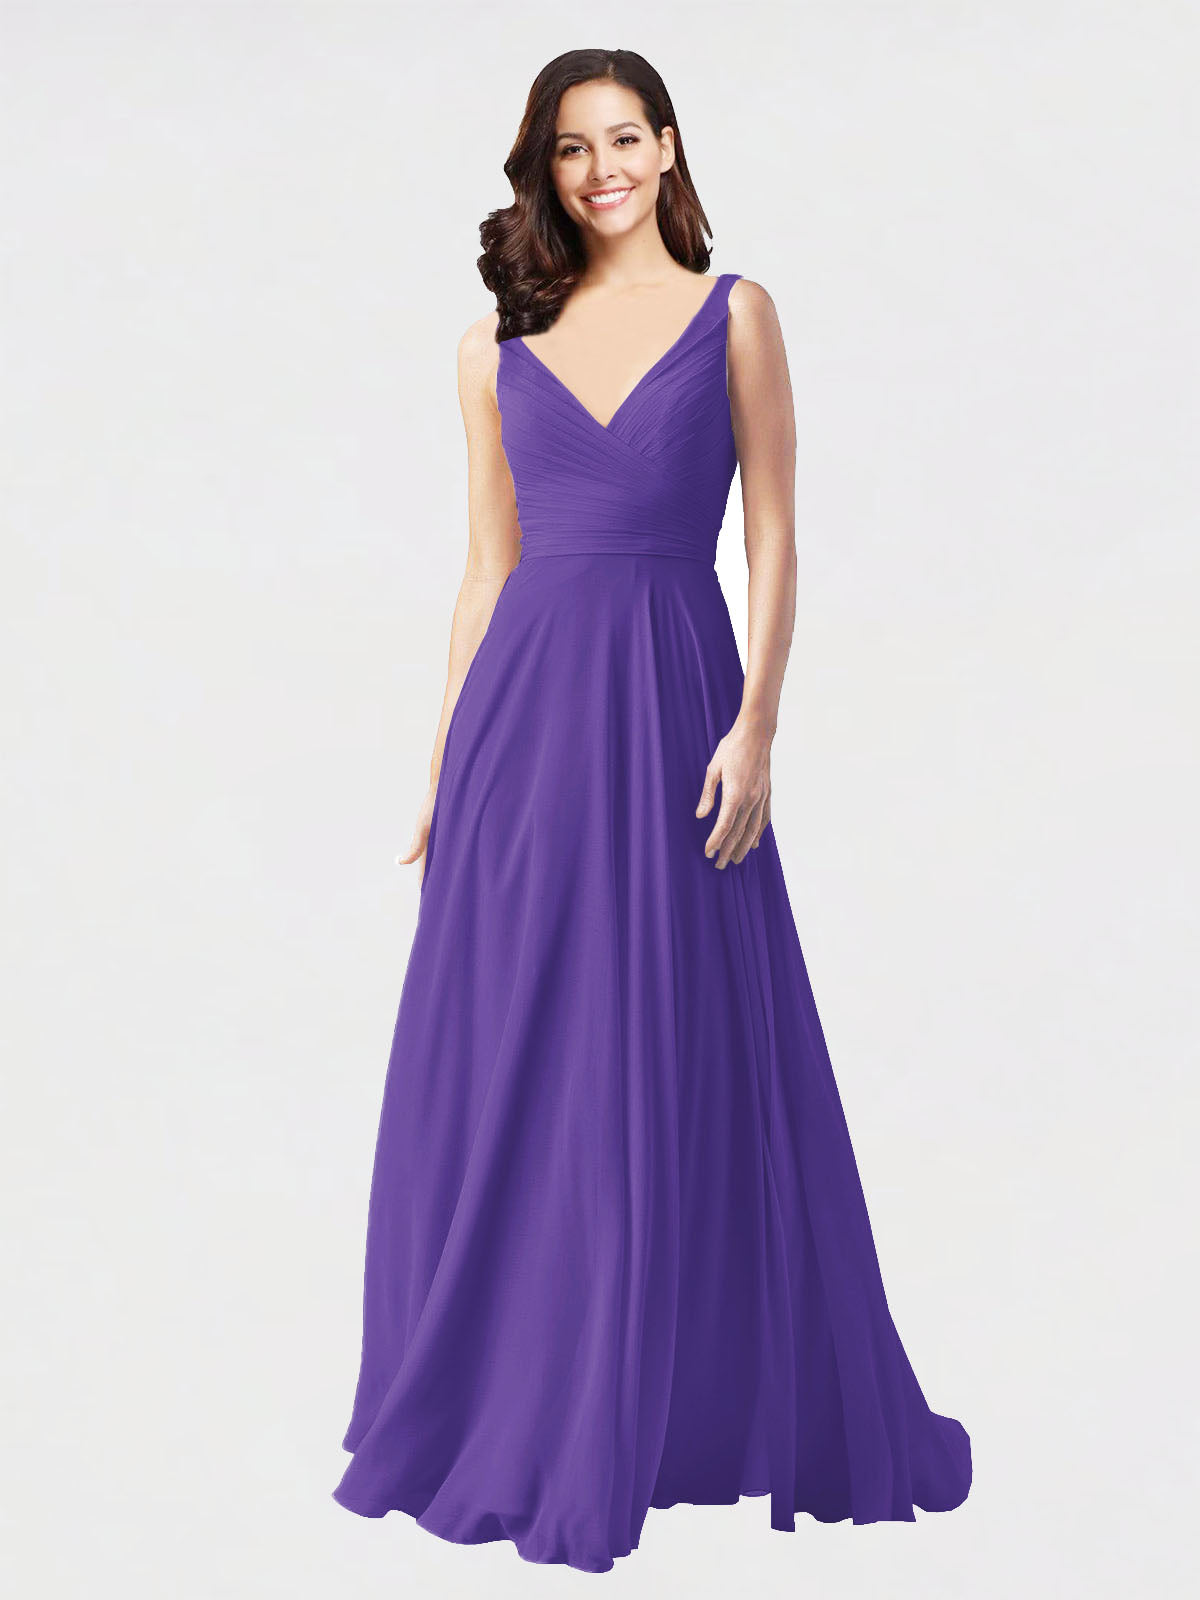 Long A-Line V-Neck Sleeveless Purple Chiffon Bridesmaid Dress Bernice